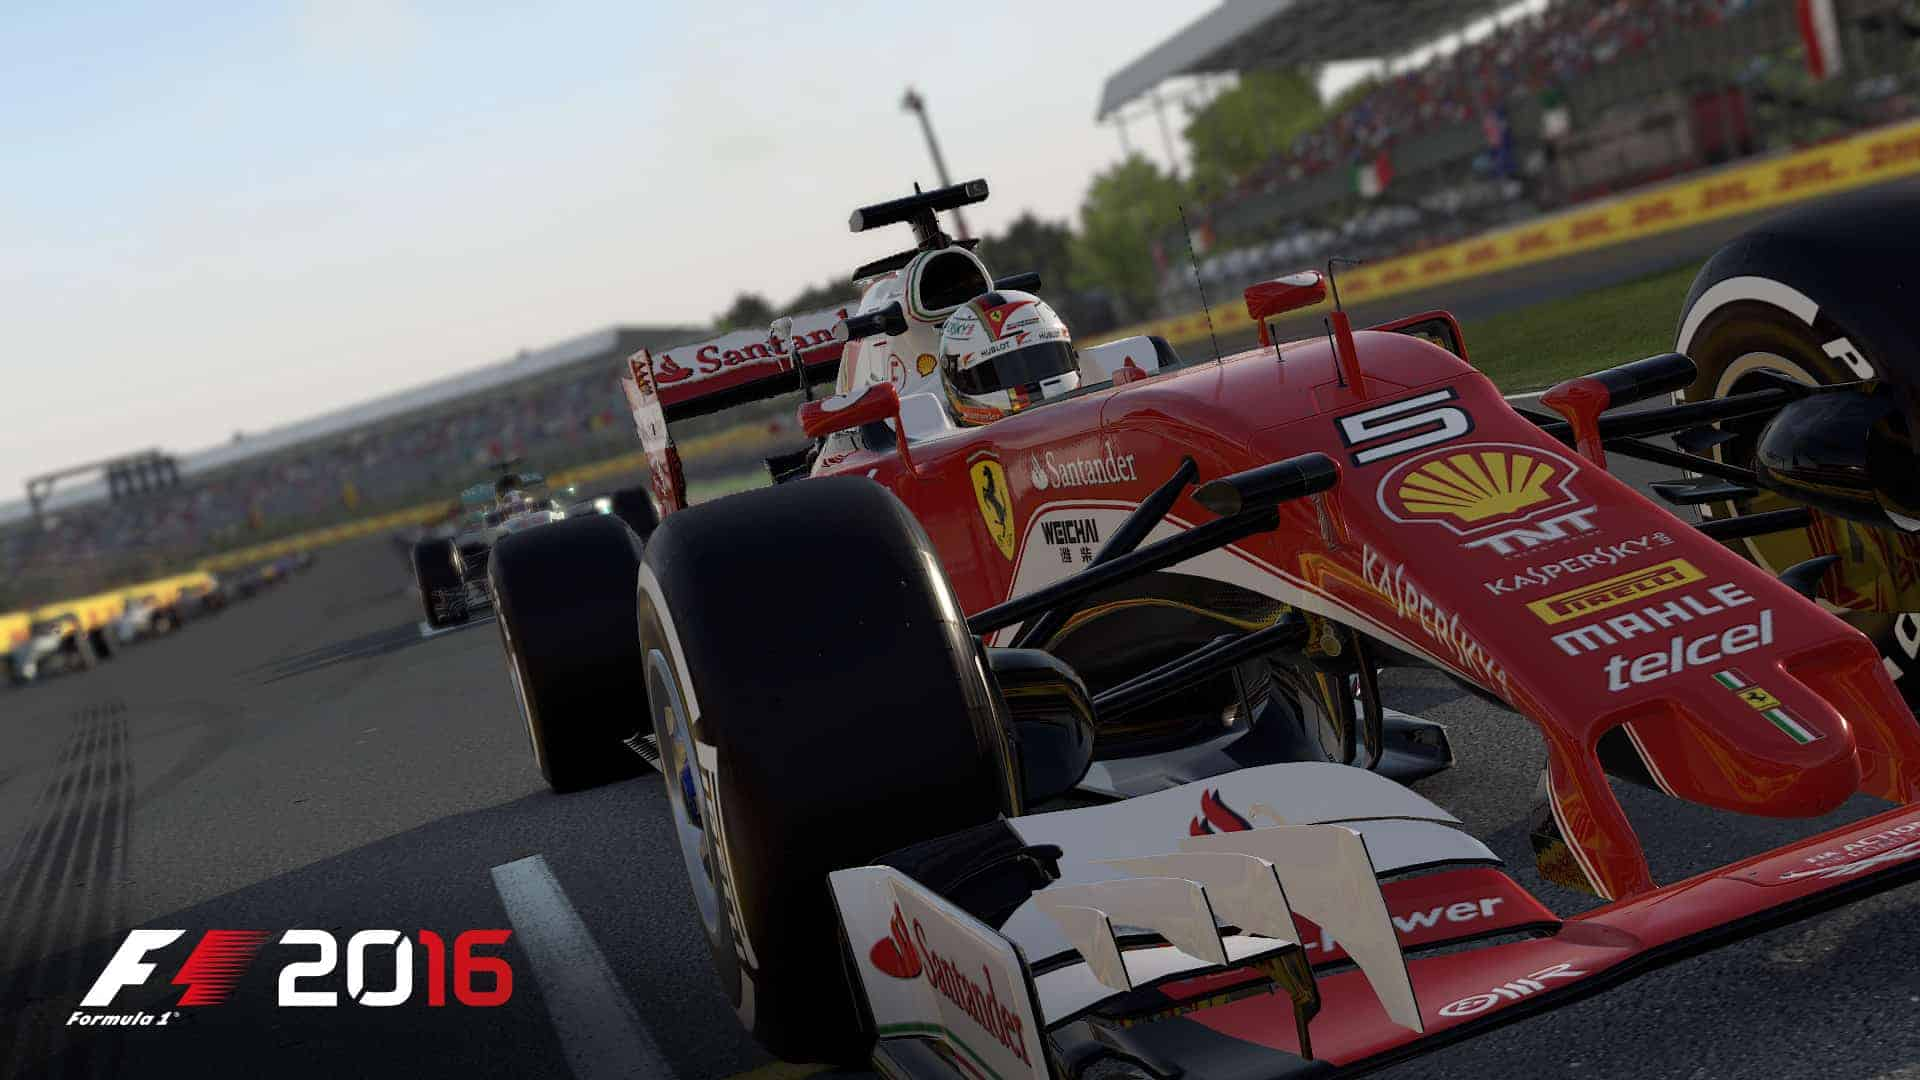 F1 2016 Get Download Free PC game - Install-Game